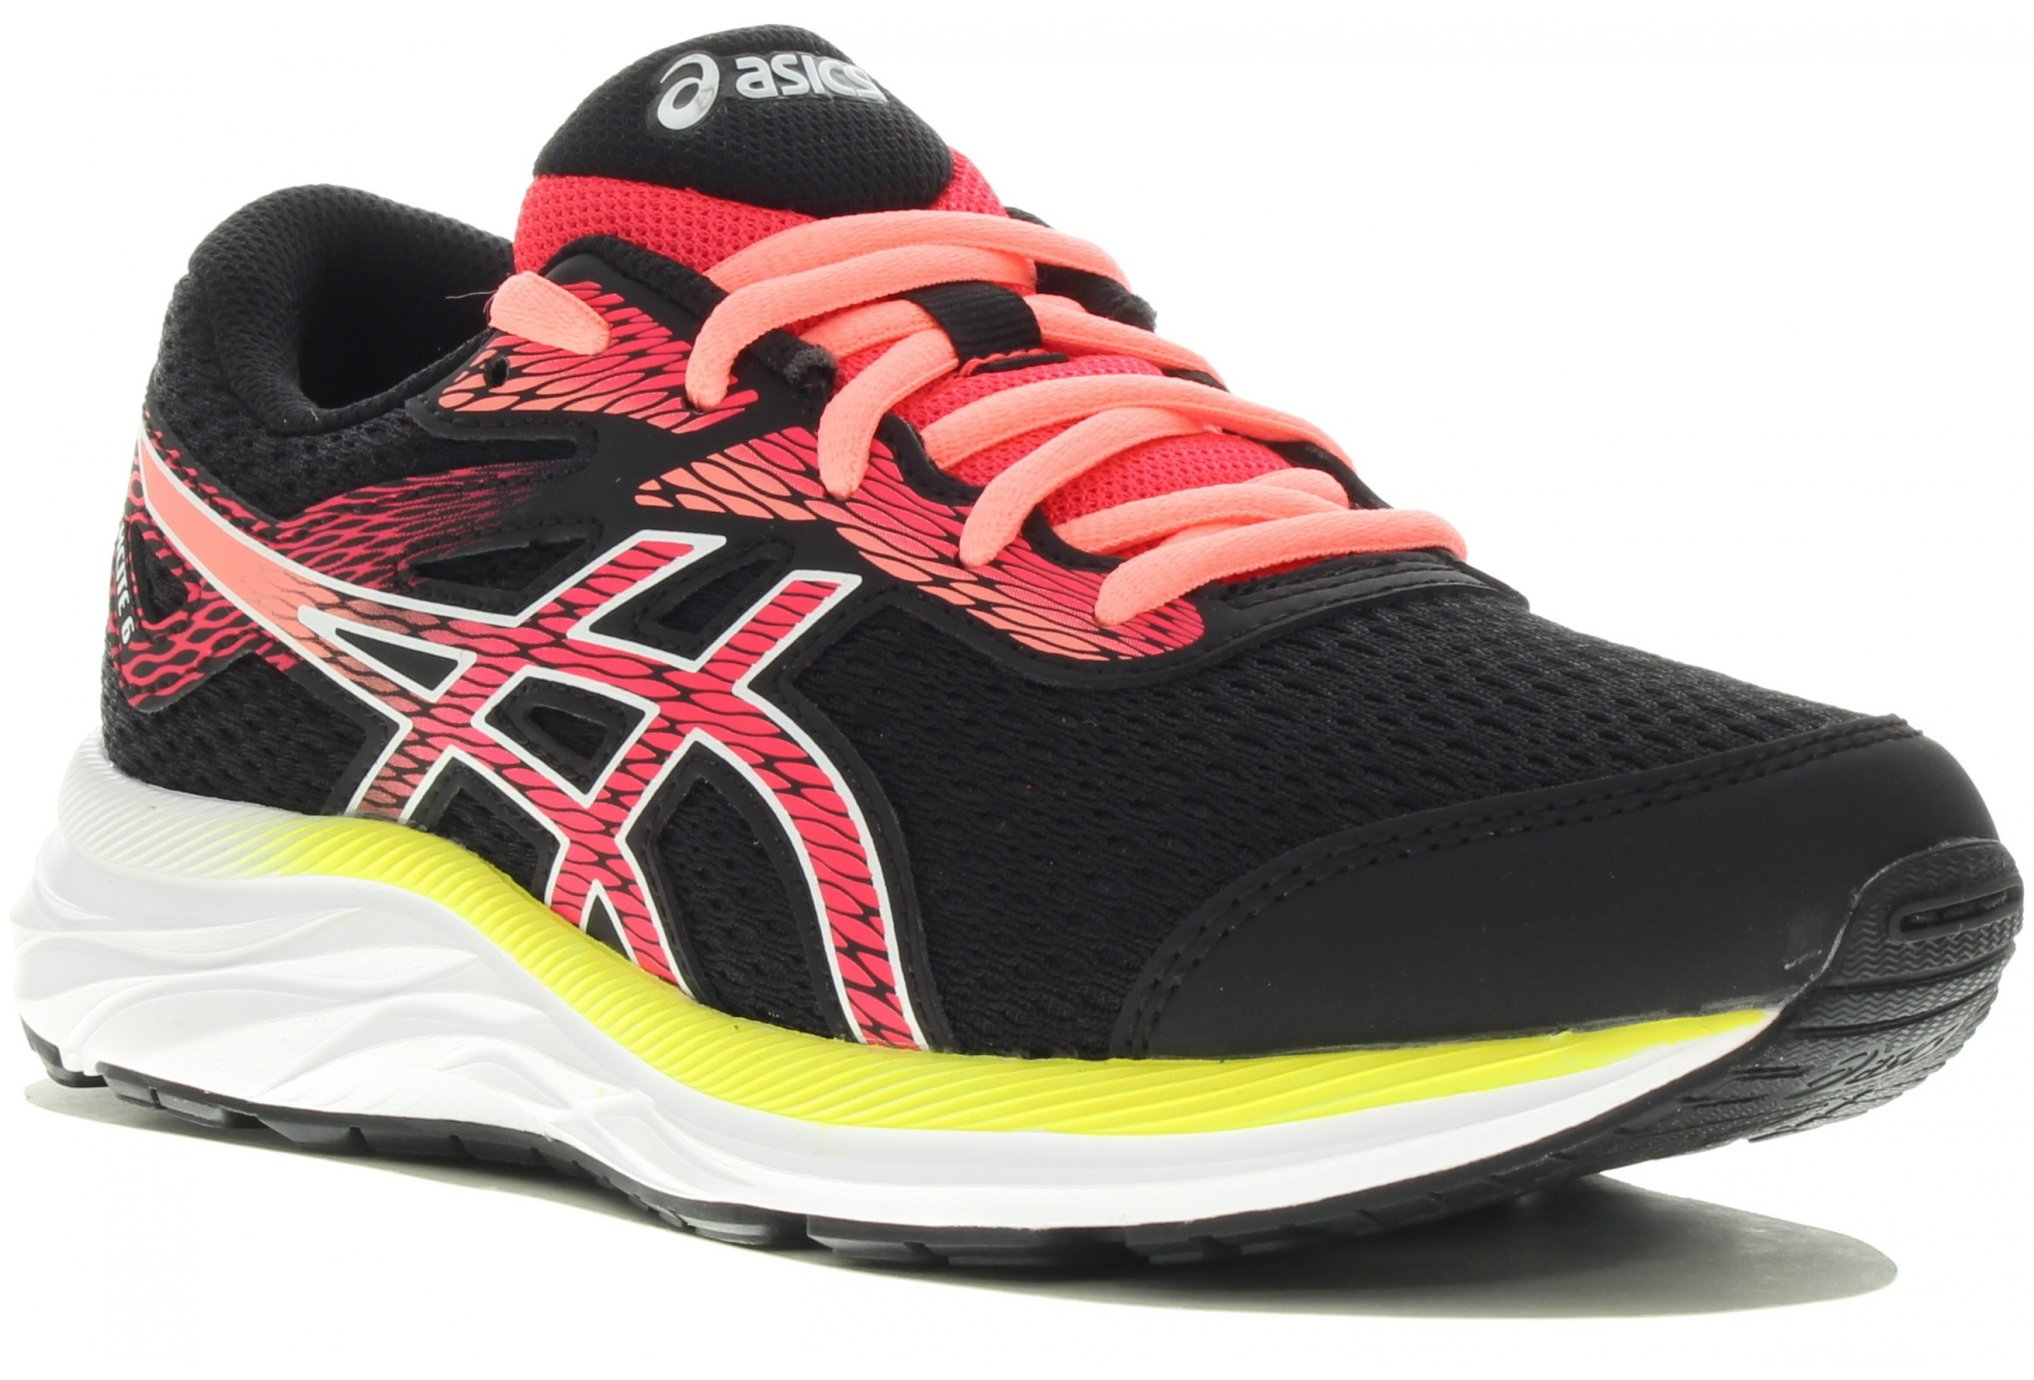 Asics Gel-Excite 6 GS Chaussures running femme